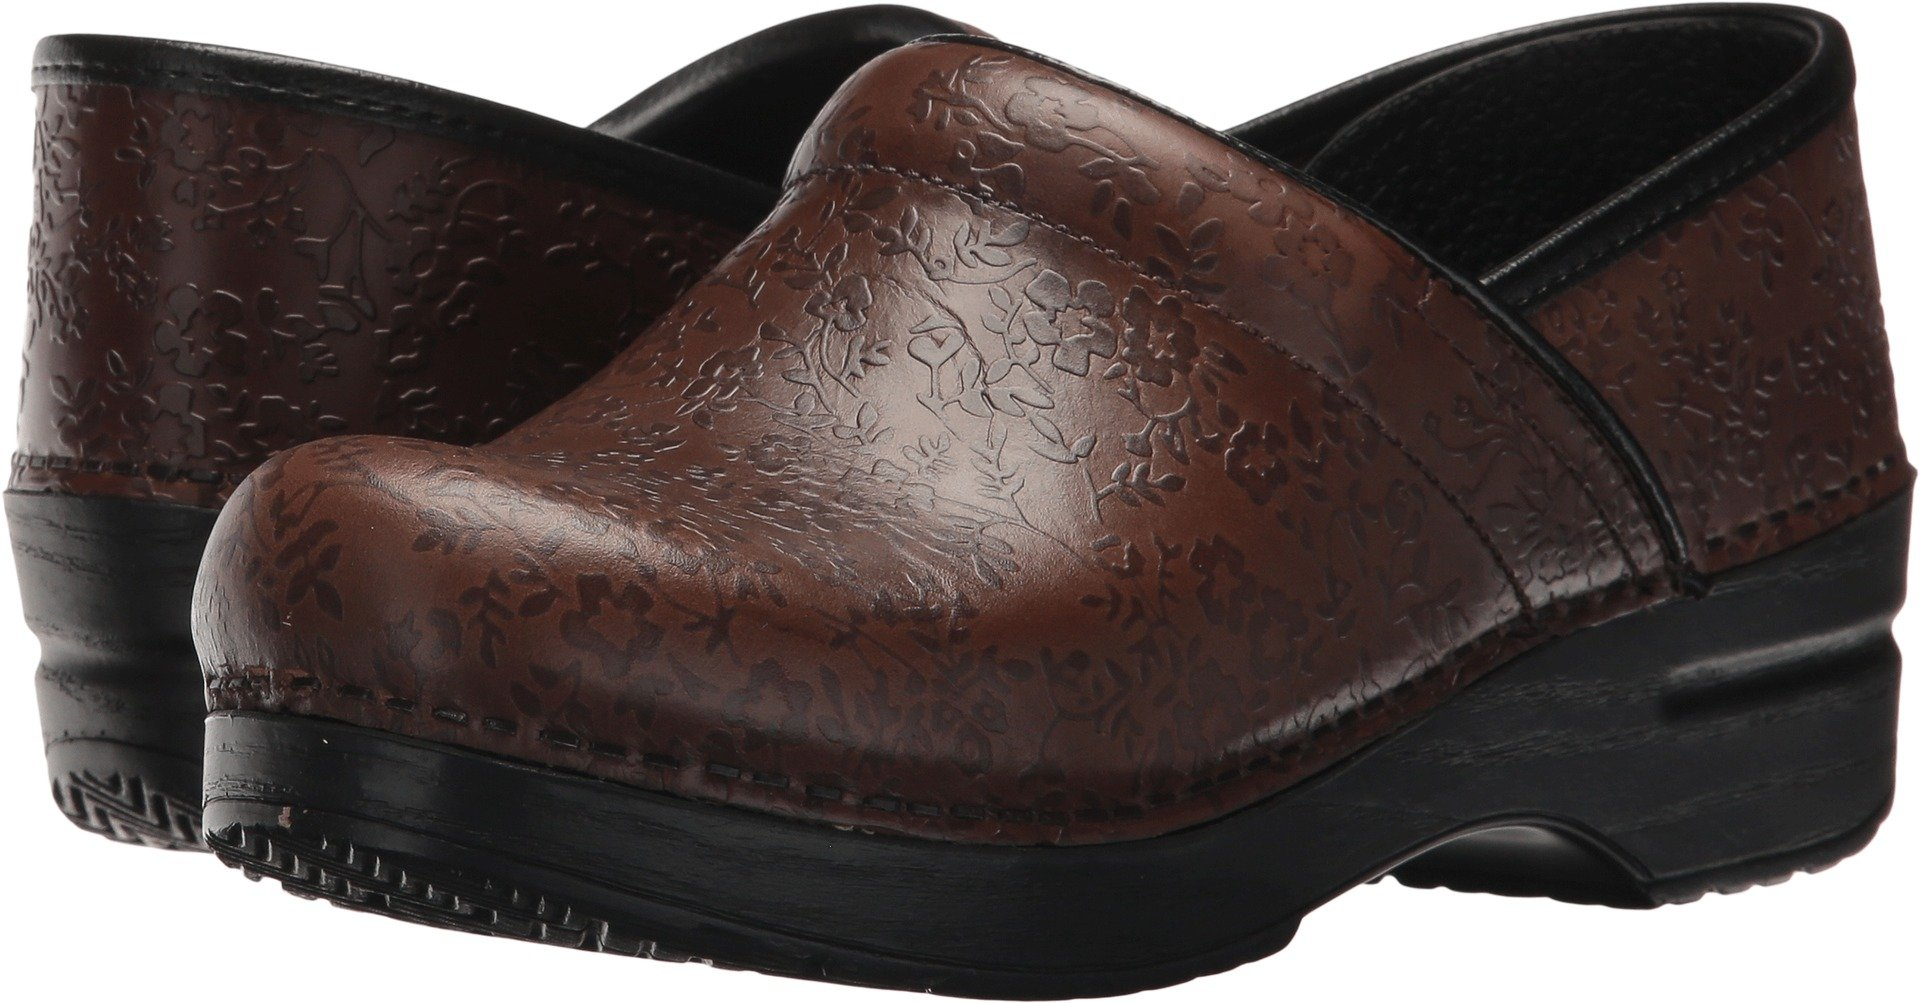 Dansko New Professional Brown Floral Embossed 41/10.5-11 Womens Shoes